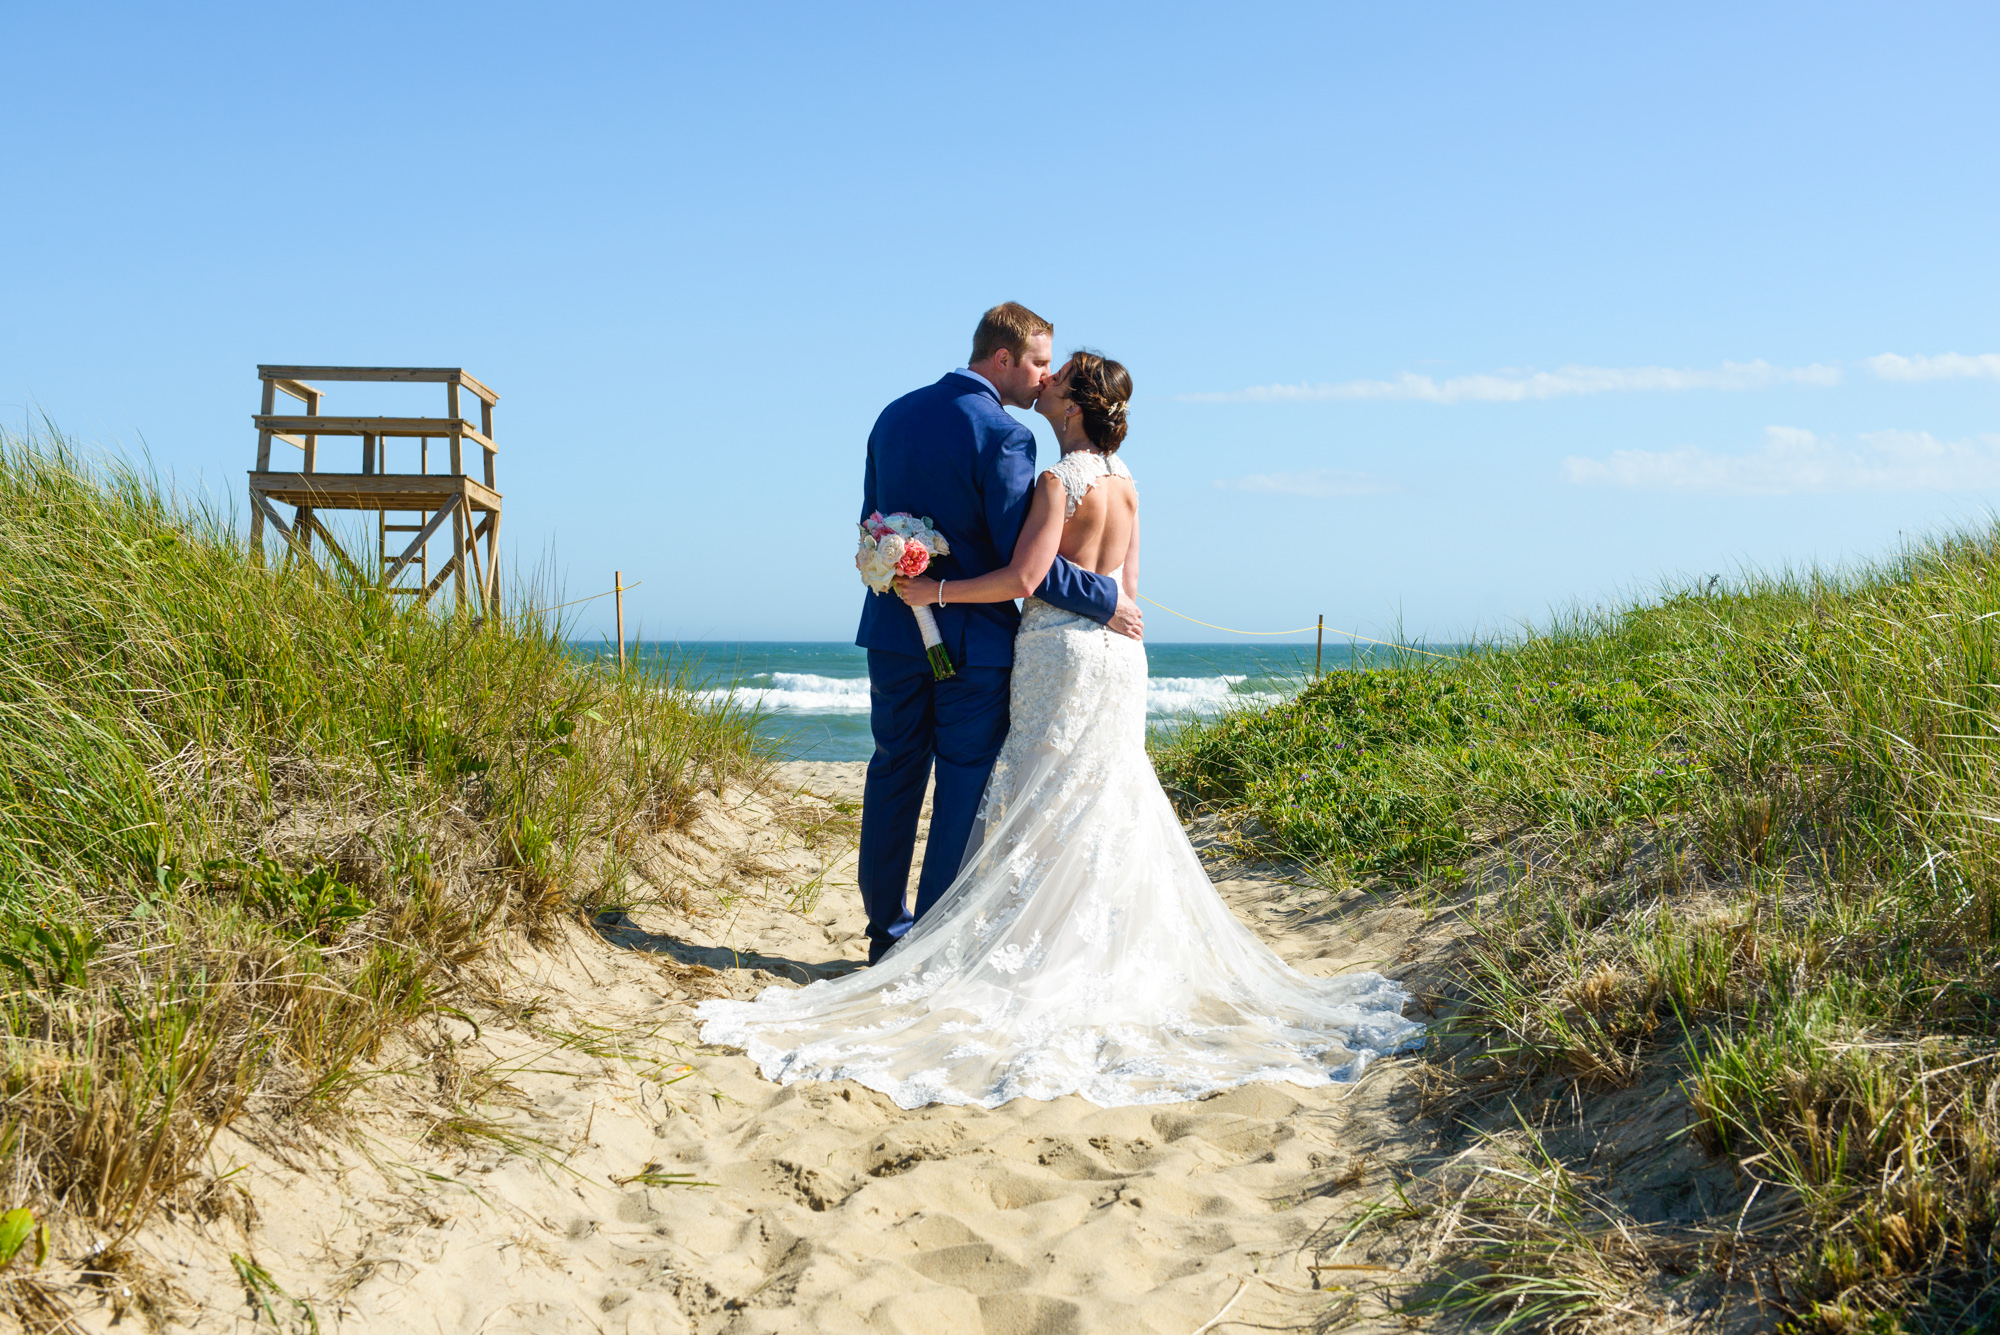 A bride and groom pose at South Beach Martha's Vineyard  photo by David Welch Photography